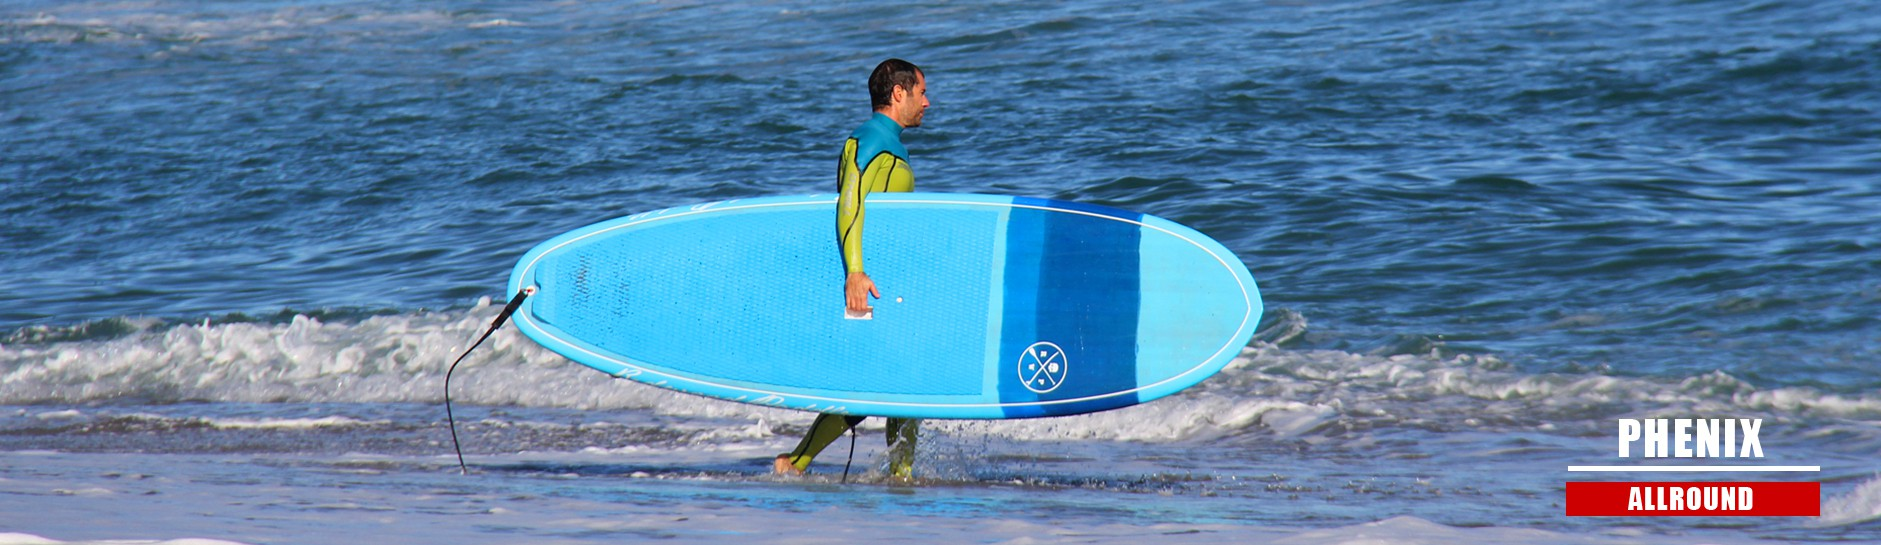 Phénix Redwoodpaddle Stand up paddle balade et Surf